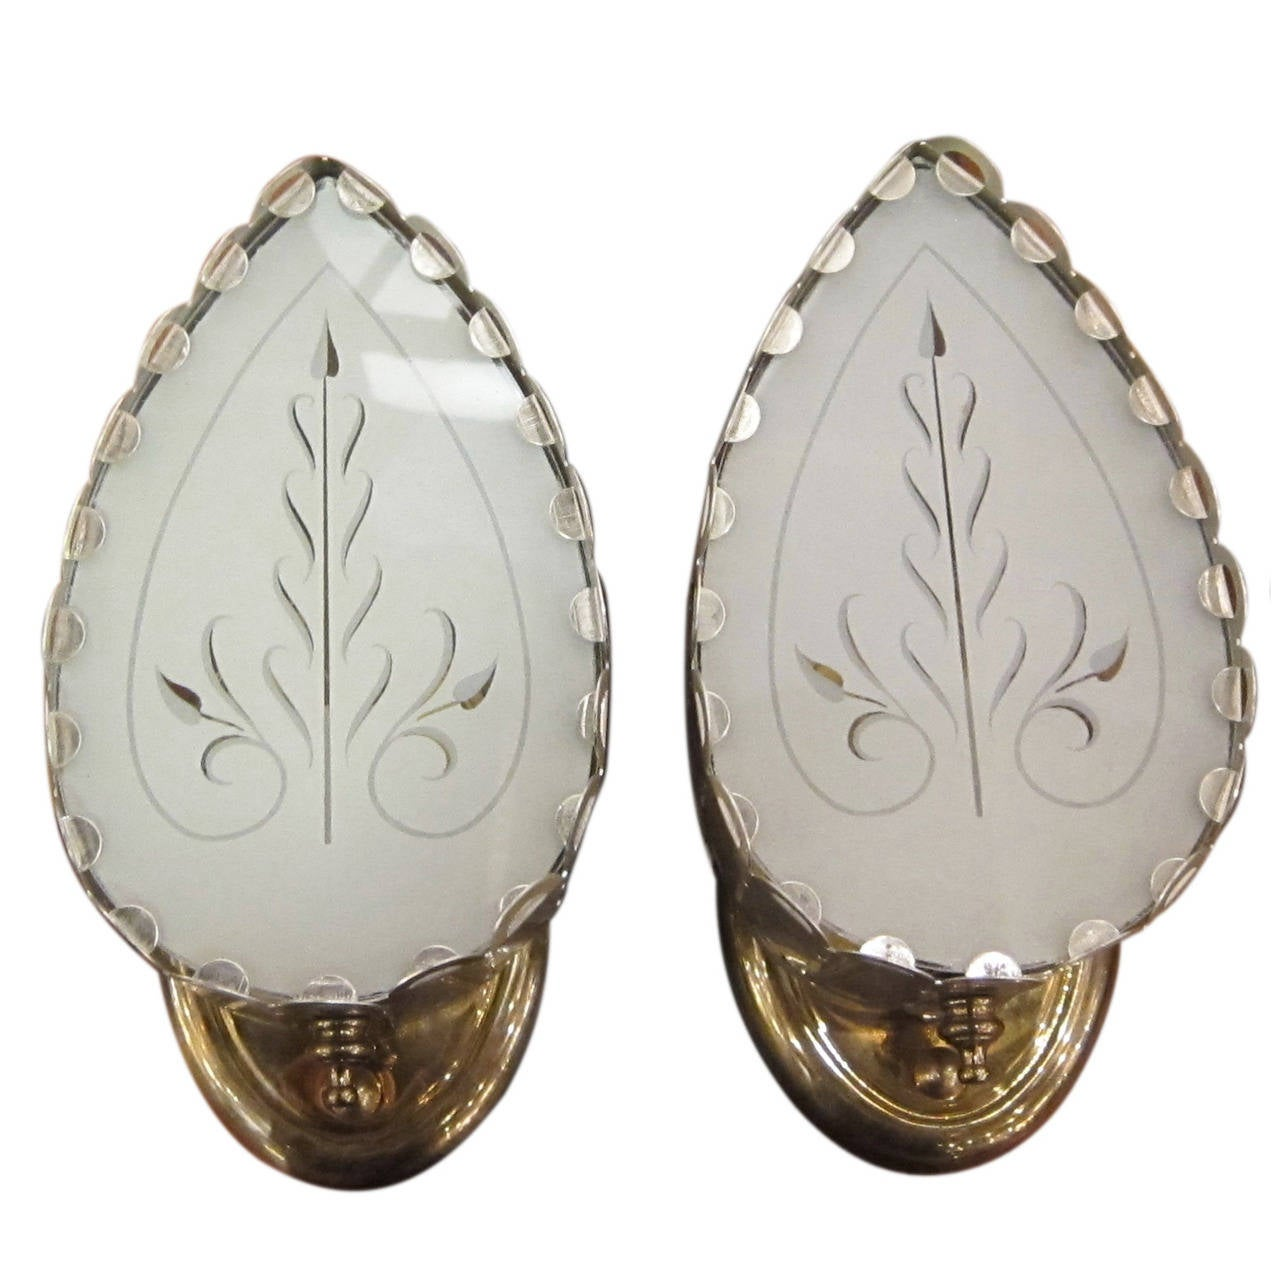 1940s Pair of Spade Shaped Sconces with Etched and Frosted Glass